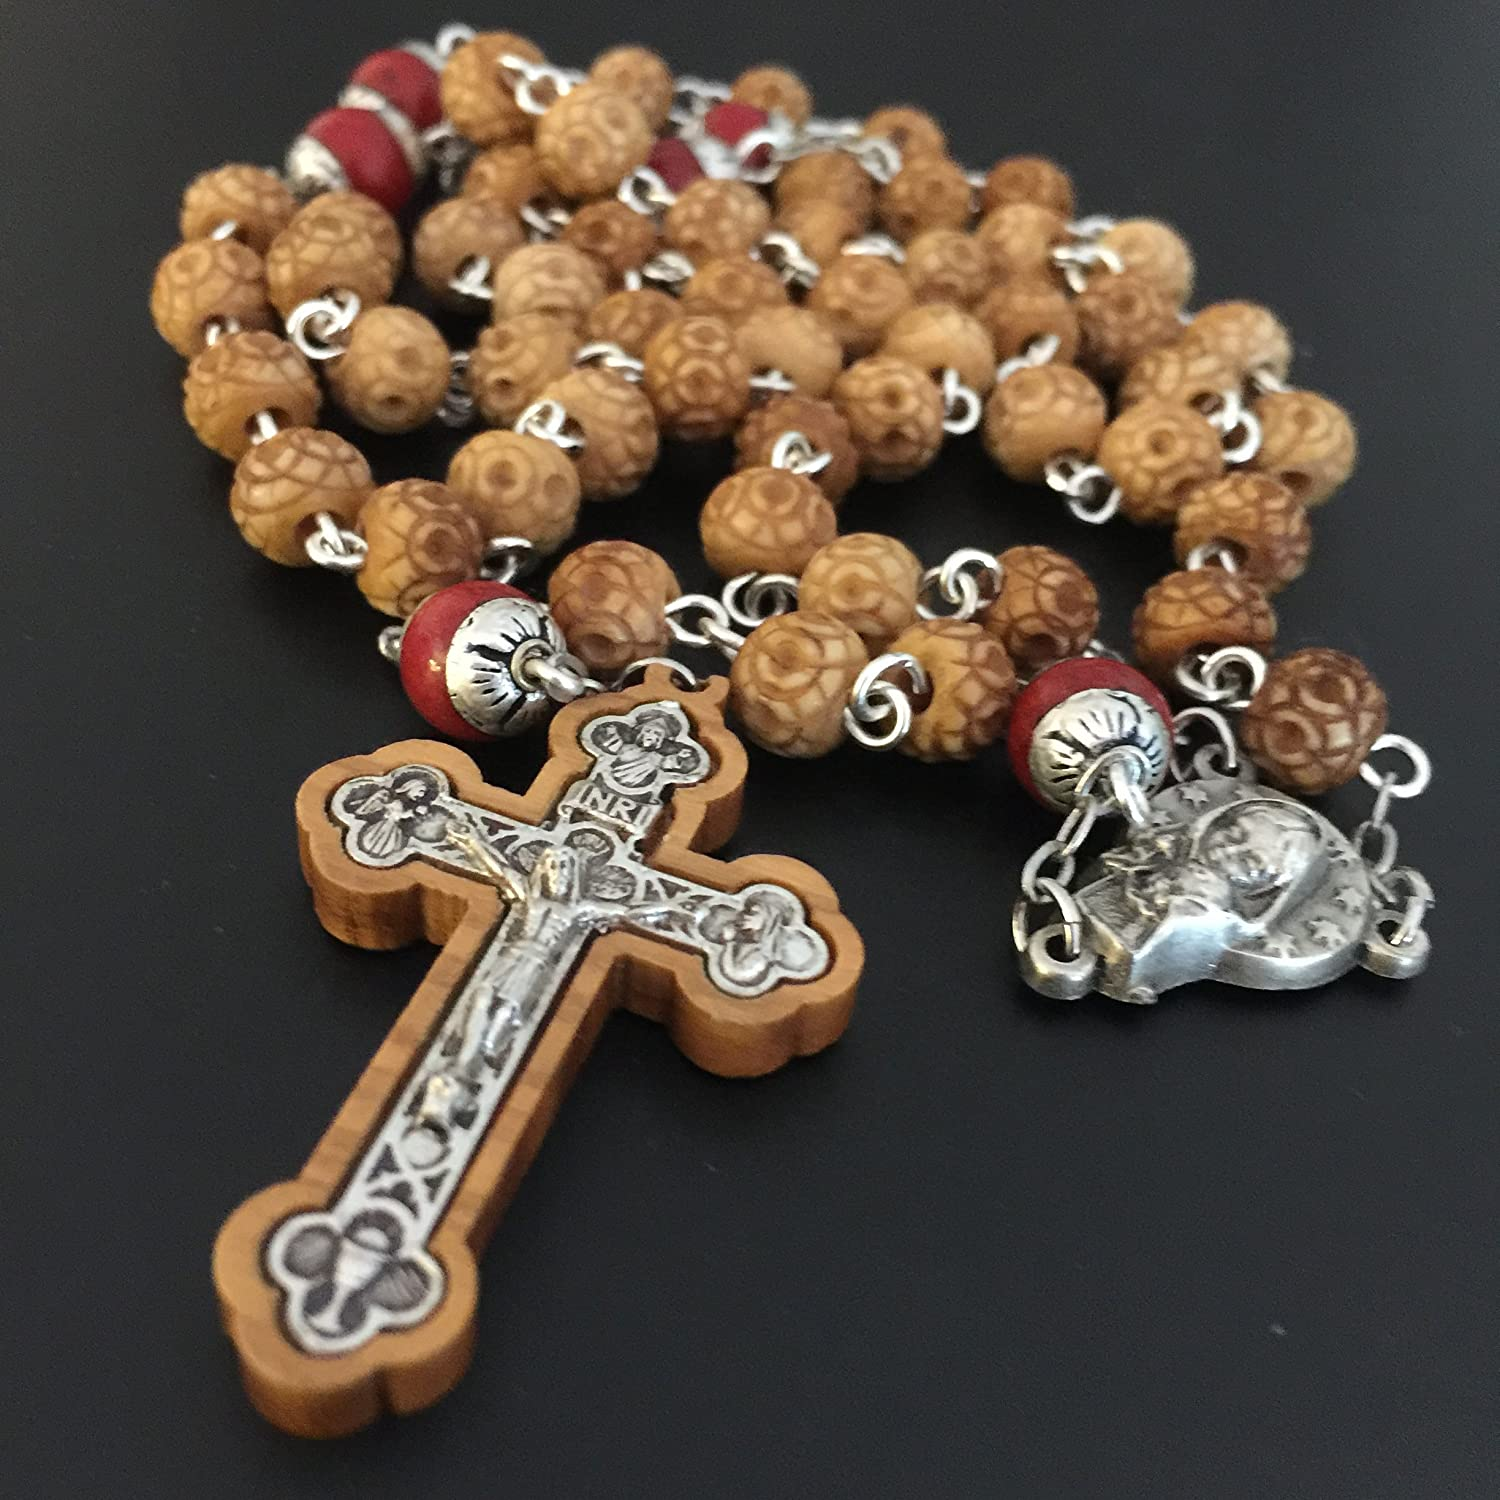 Benedict 5 DECADE Rosary Cross Necklace Red Carnelian beads Vintage Catholic St